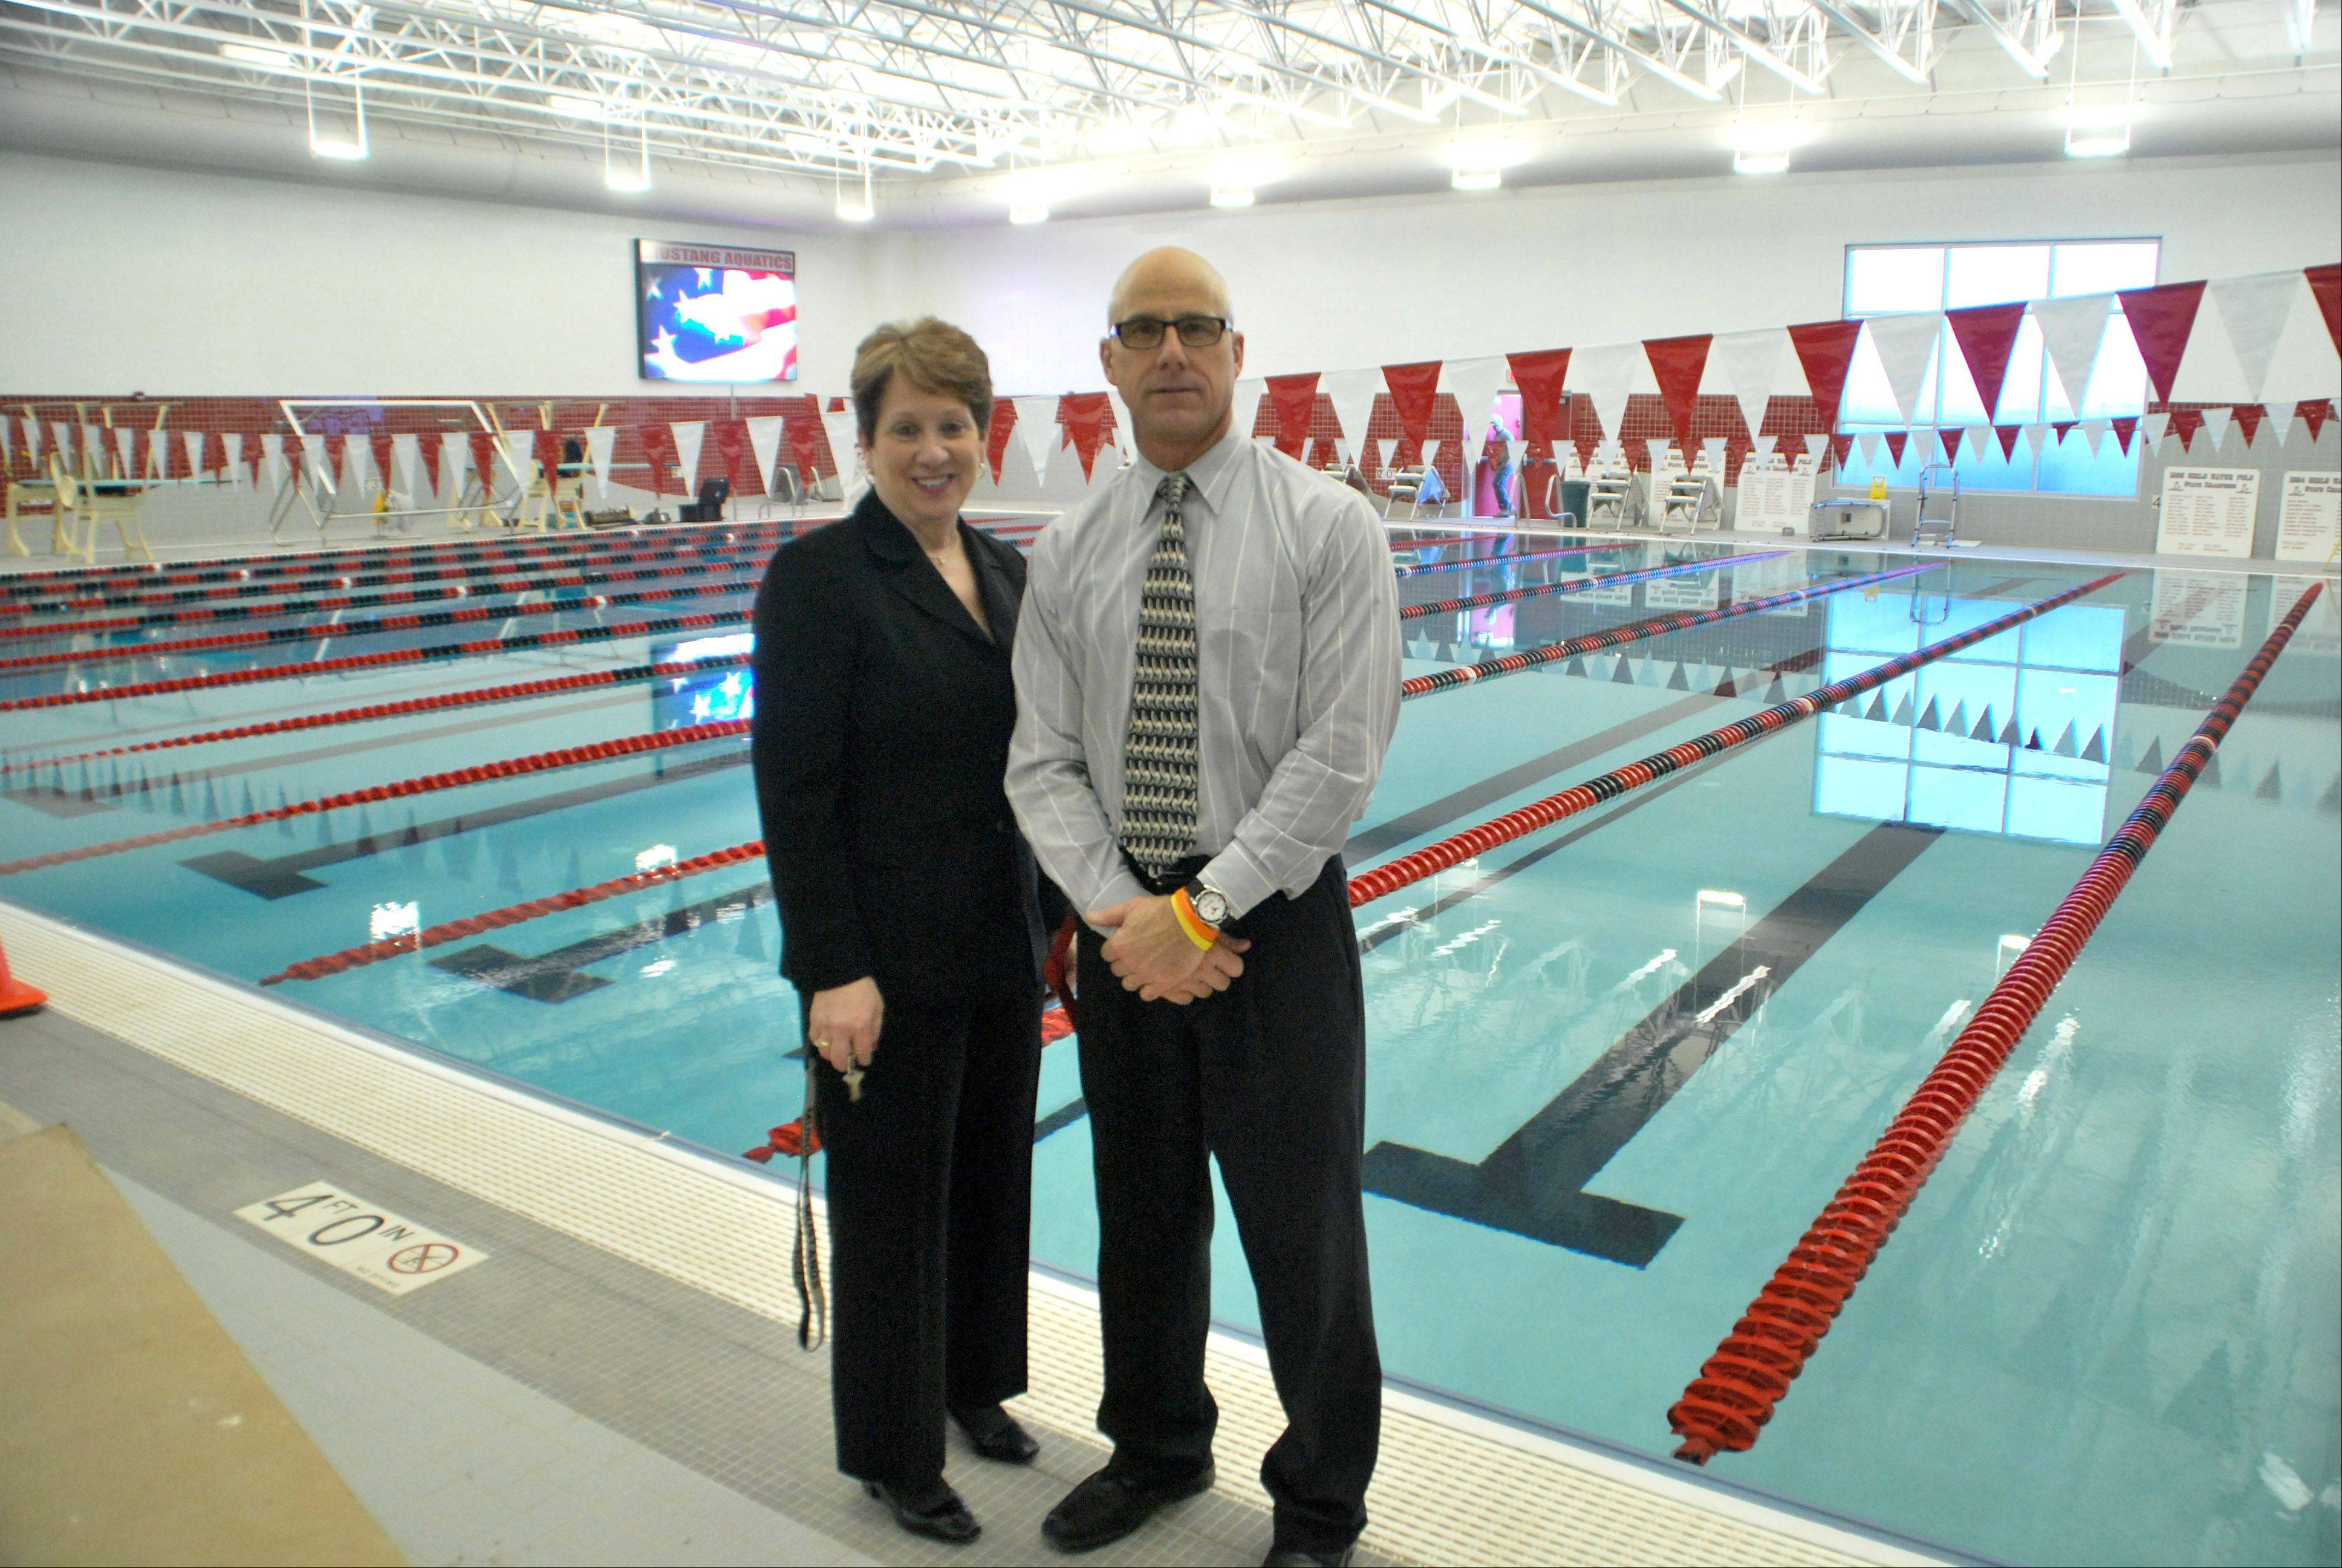 Mundelein High School District 120 Superintendent Jody Ware and Athletic Director Perry Wilhelm at the renovated Mundelein High School pool.